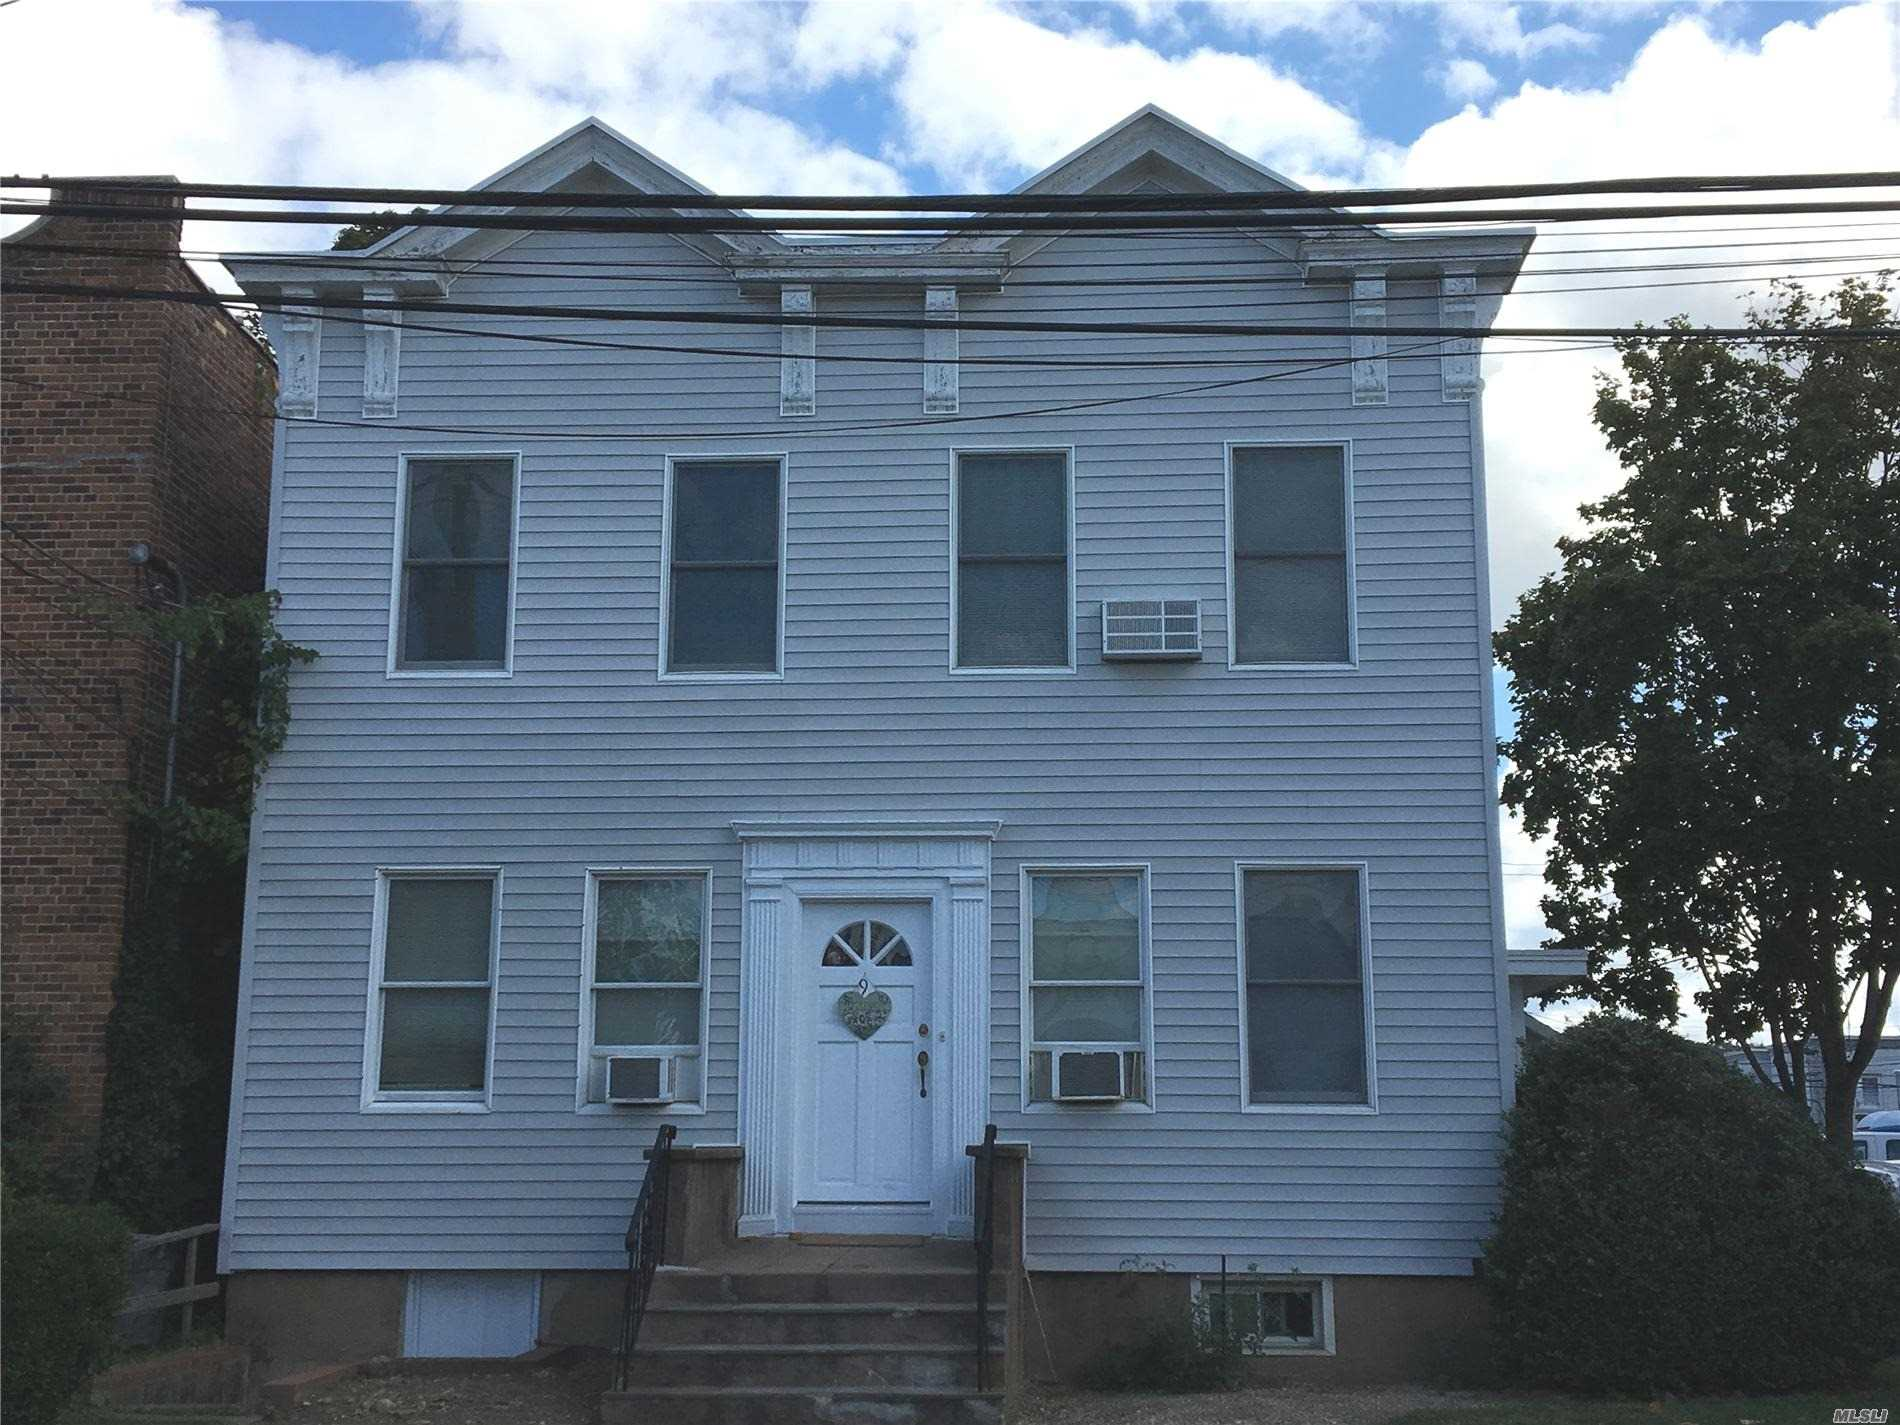 Charming 1 Bedroom Apartment in the Heart of Town and Across the Street From the LIRR. Storage Space Available in Basement.